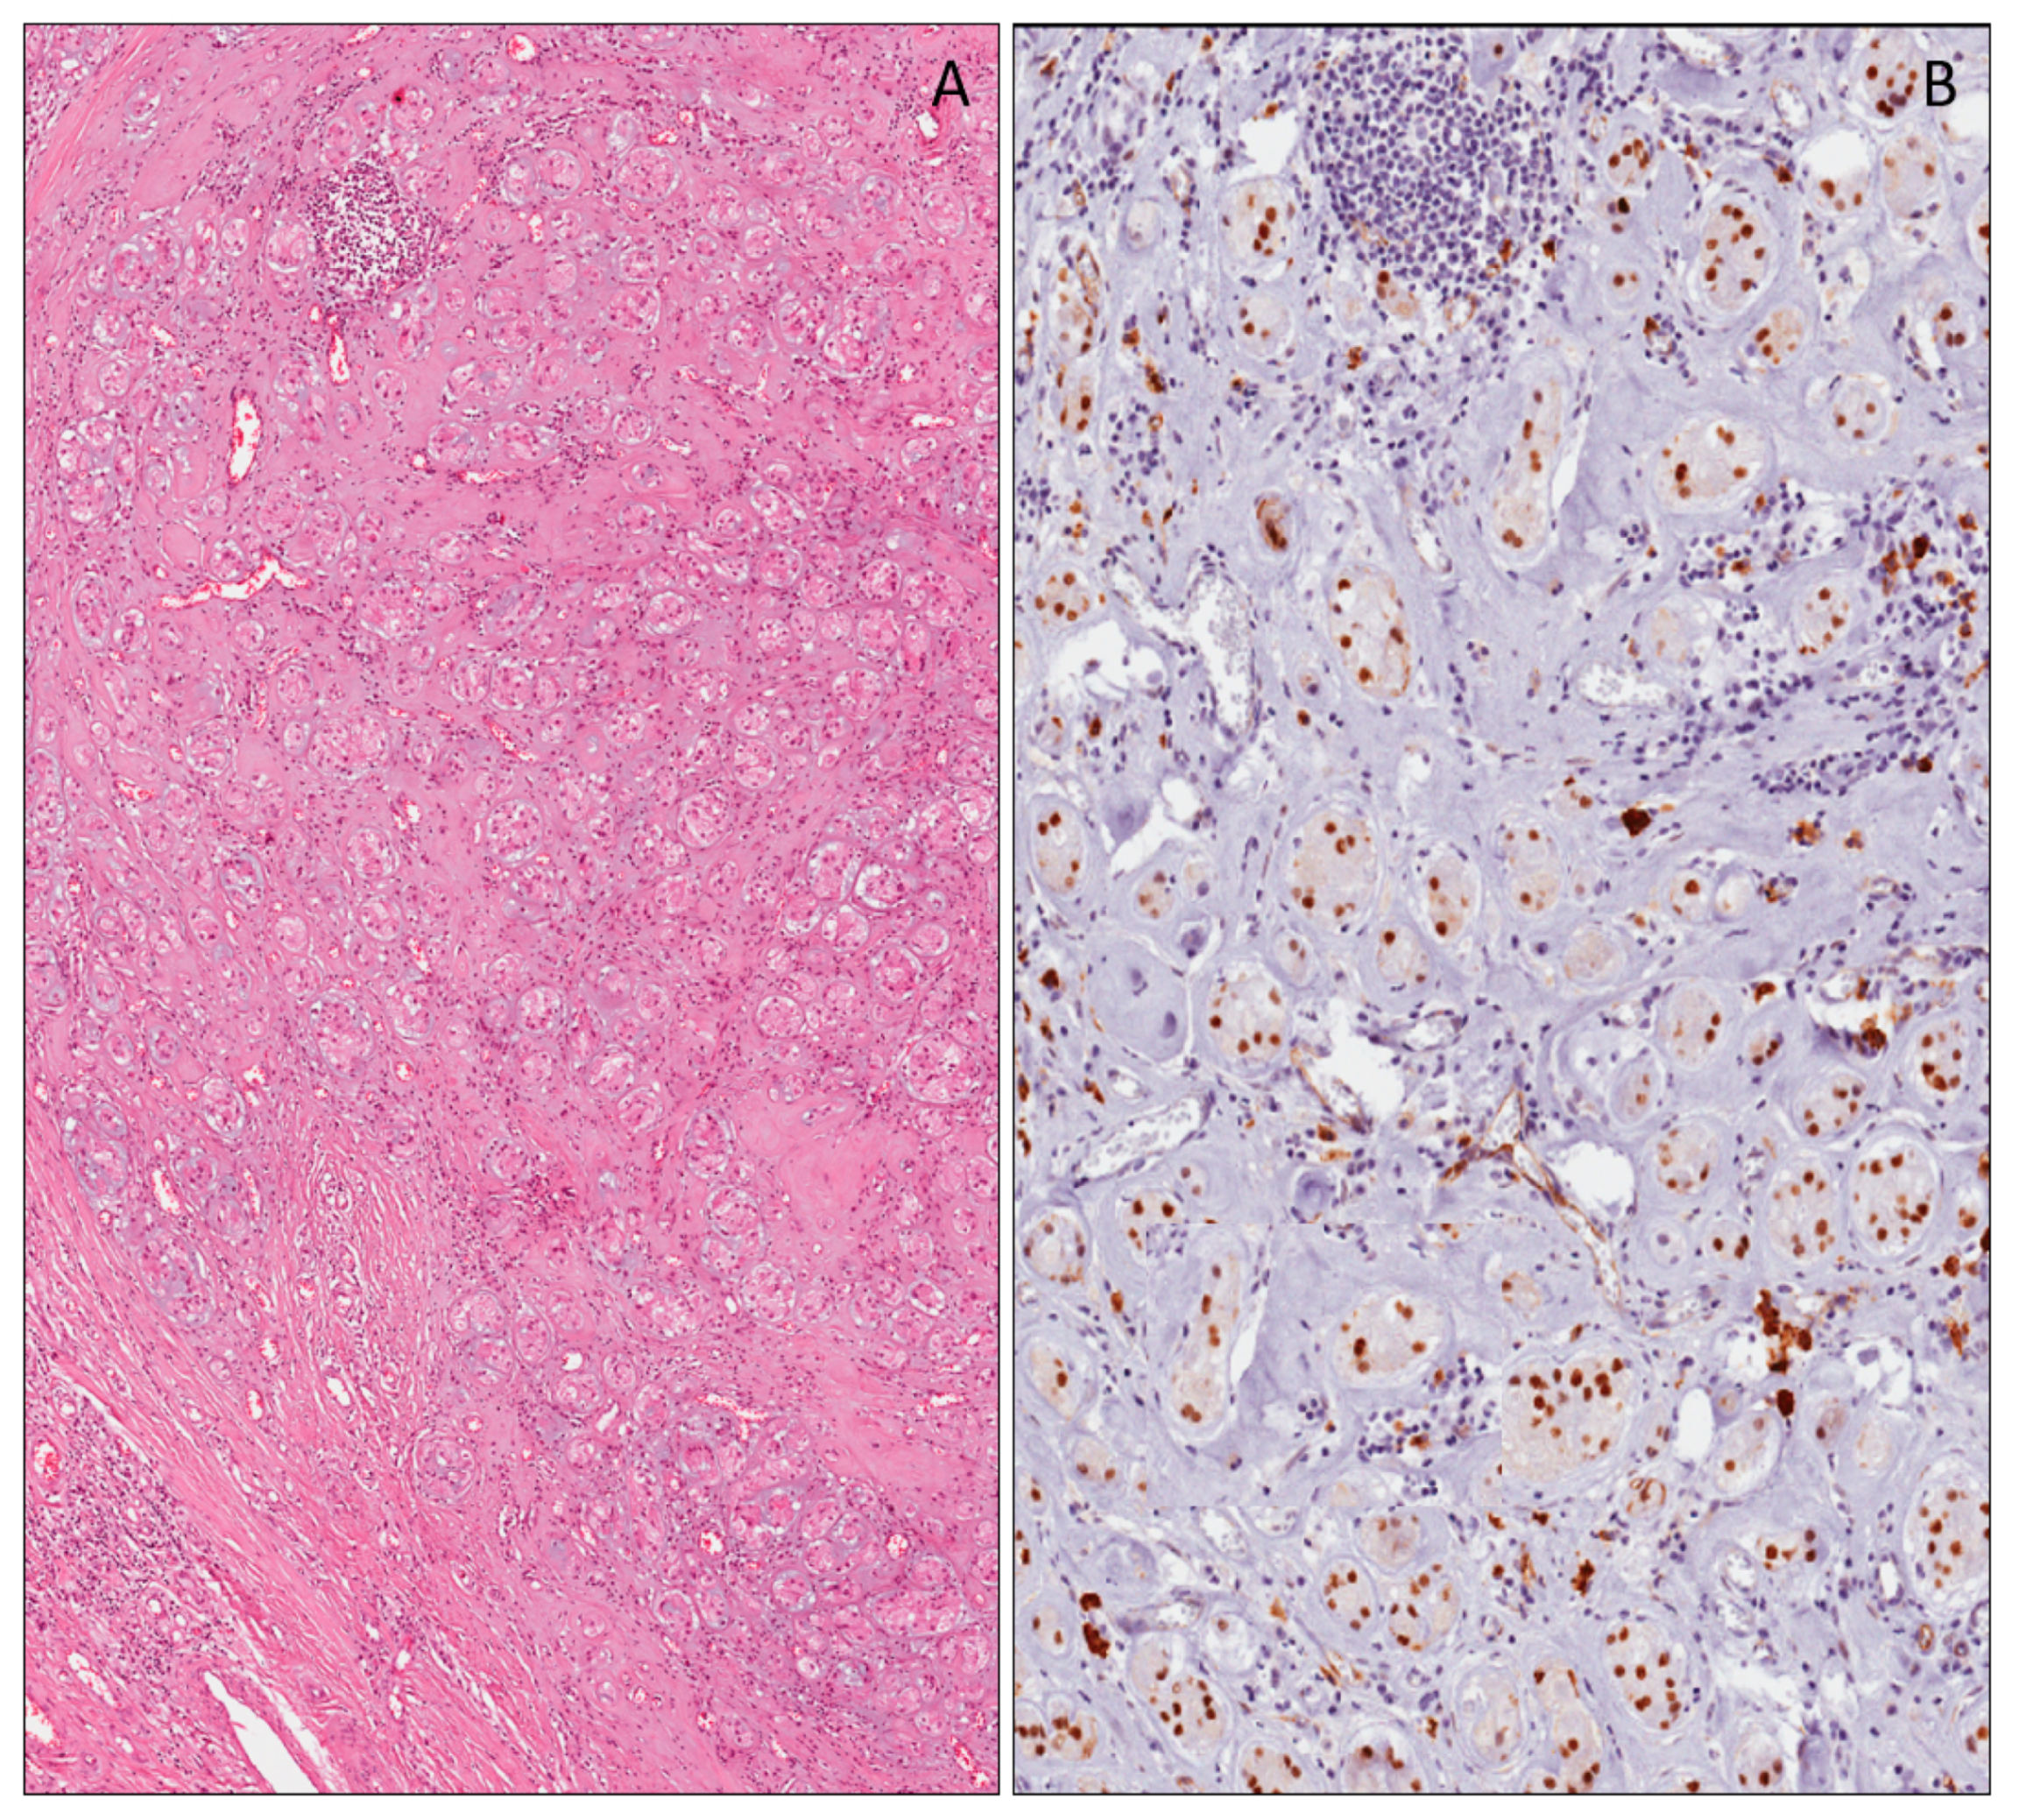 Applied Sciences Free Full Text Immunohistochemical Expression Of Wilms Tumor 1 Protein In Human Tissues From Ontogenesis To Neoplastic Tissues Html